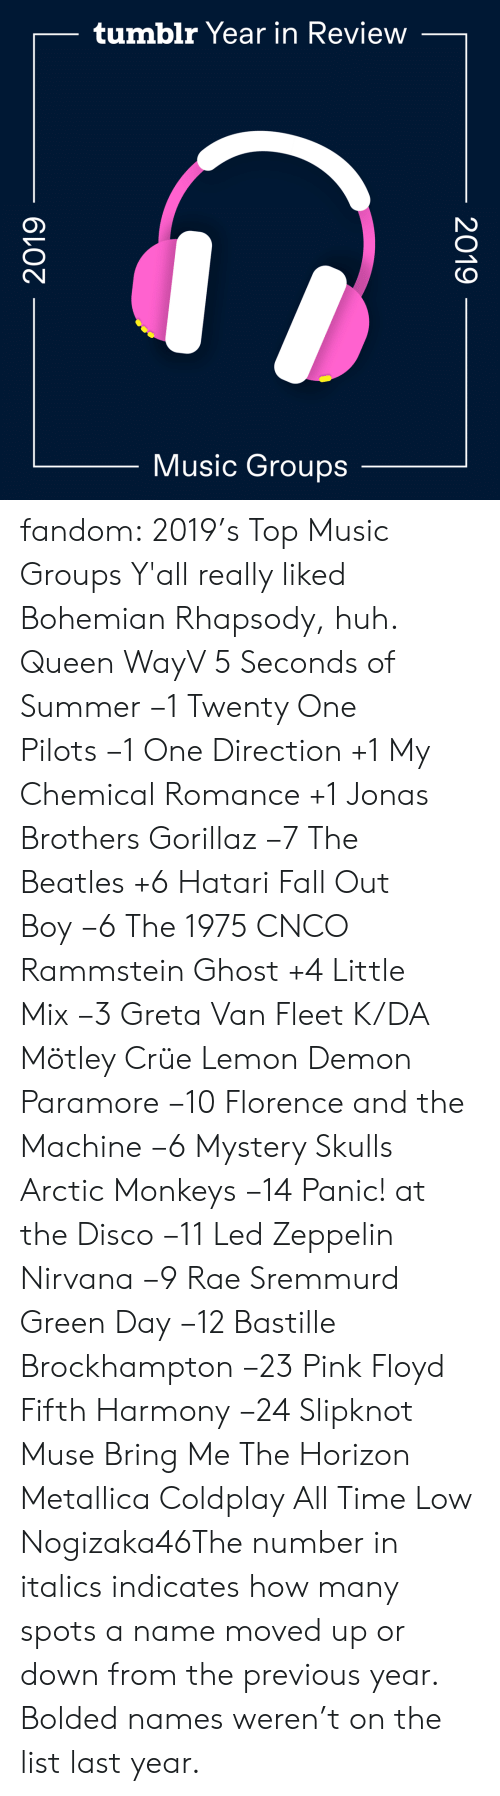 panic: tumblr Year in Review  Music Groups  2019  2019 fandom:  2019's Top Music Groups  Y'all really liked Bohemian Rhapsody, huh.  Queen  WayV  5 Seconds of Summer −1  Twenty One Pilots −1  One Direction +1  My Chemical Romance +1  Jonas Brothers  Gorillaz −7  The Beatles +6  Hatari  Fall Out Boy −6  The 1975  CNCO  Rammstein  Ghost +4  Little Mix −3  Greta Van Fleet  K/DA  Mötley Crüe  Lemon Demon  Paramore −10  Florence and the Machine −6  Mystery Skulls  Arctic Monkeys −14  Panic! at the Disco −11  Led Zeppelin   Nirvana −9  Rae Sremmurd  Green Day −12  Bastille  Brockhampton −23  Pink Floyd  Fifth Harmony −24  Slipknot  Muse  Bring Me The Horizon  Metallica  Coldplay  All Time Low  Nogizaka46The number in italics indicates how many spots a name moved up or down from the previous year. Bolded names weren't on the list last year.